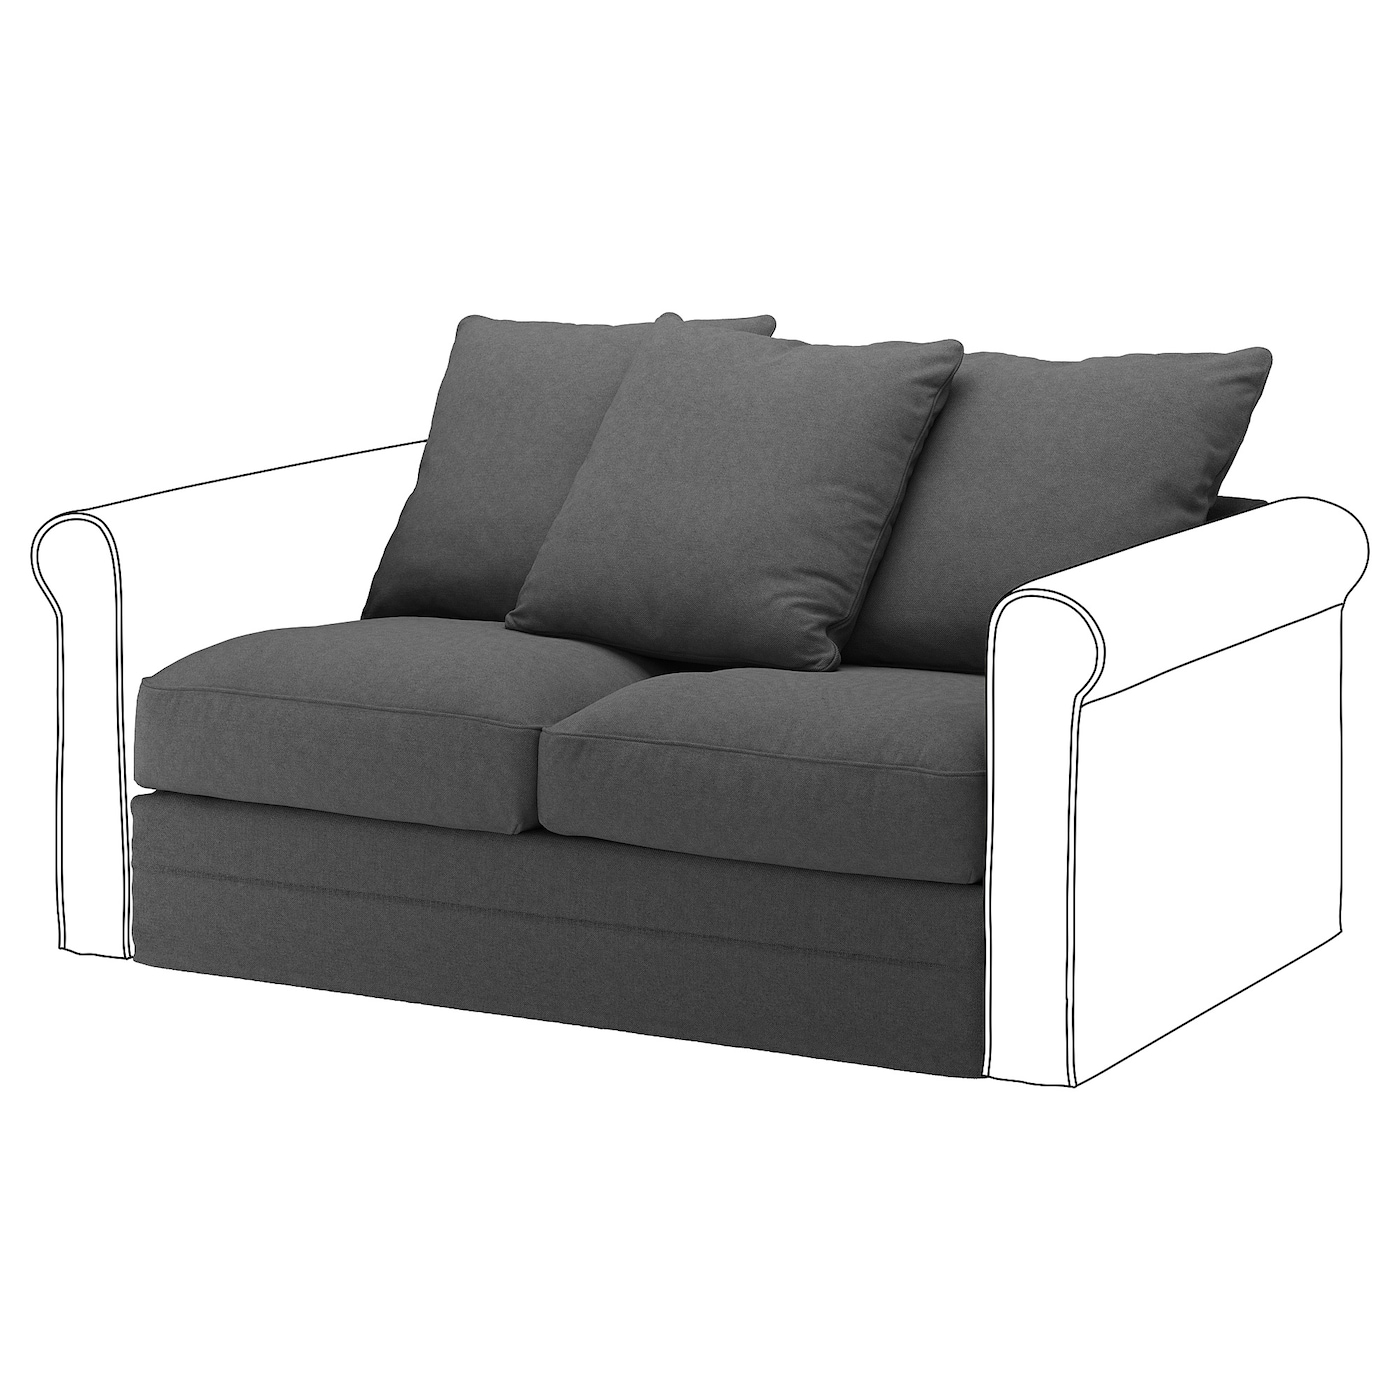 IKEA GRÖNLID 2-seat section